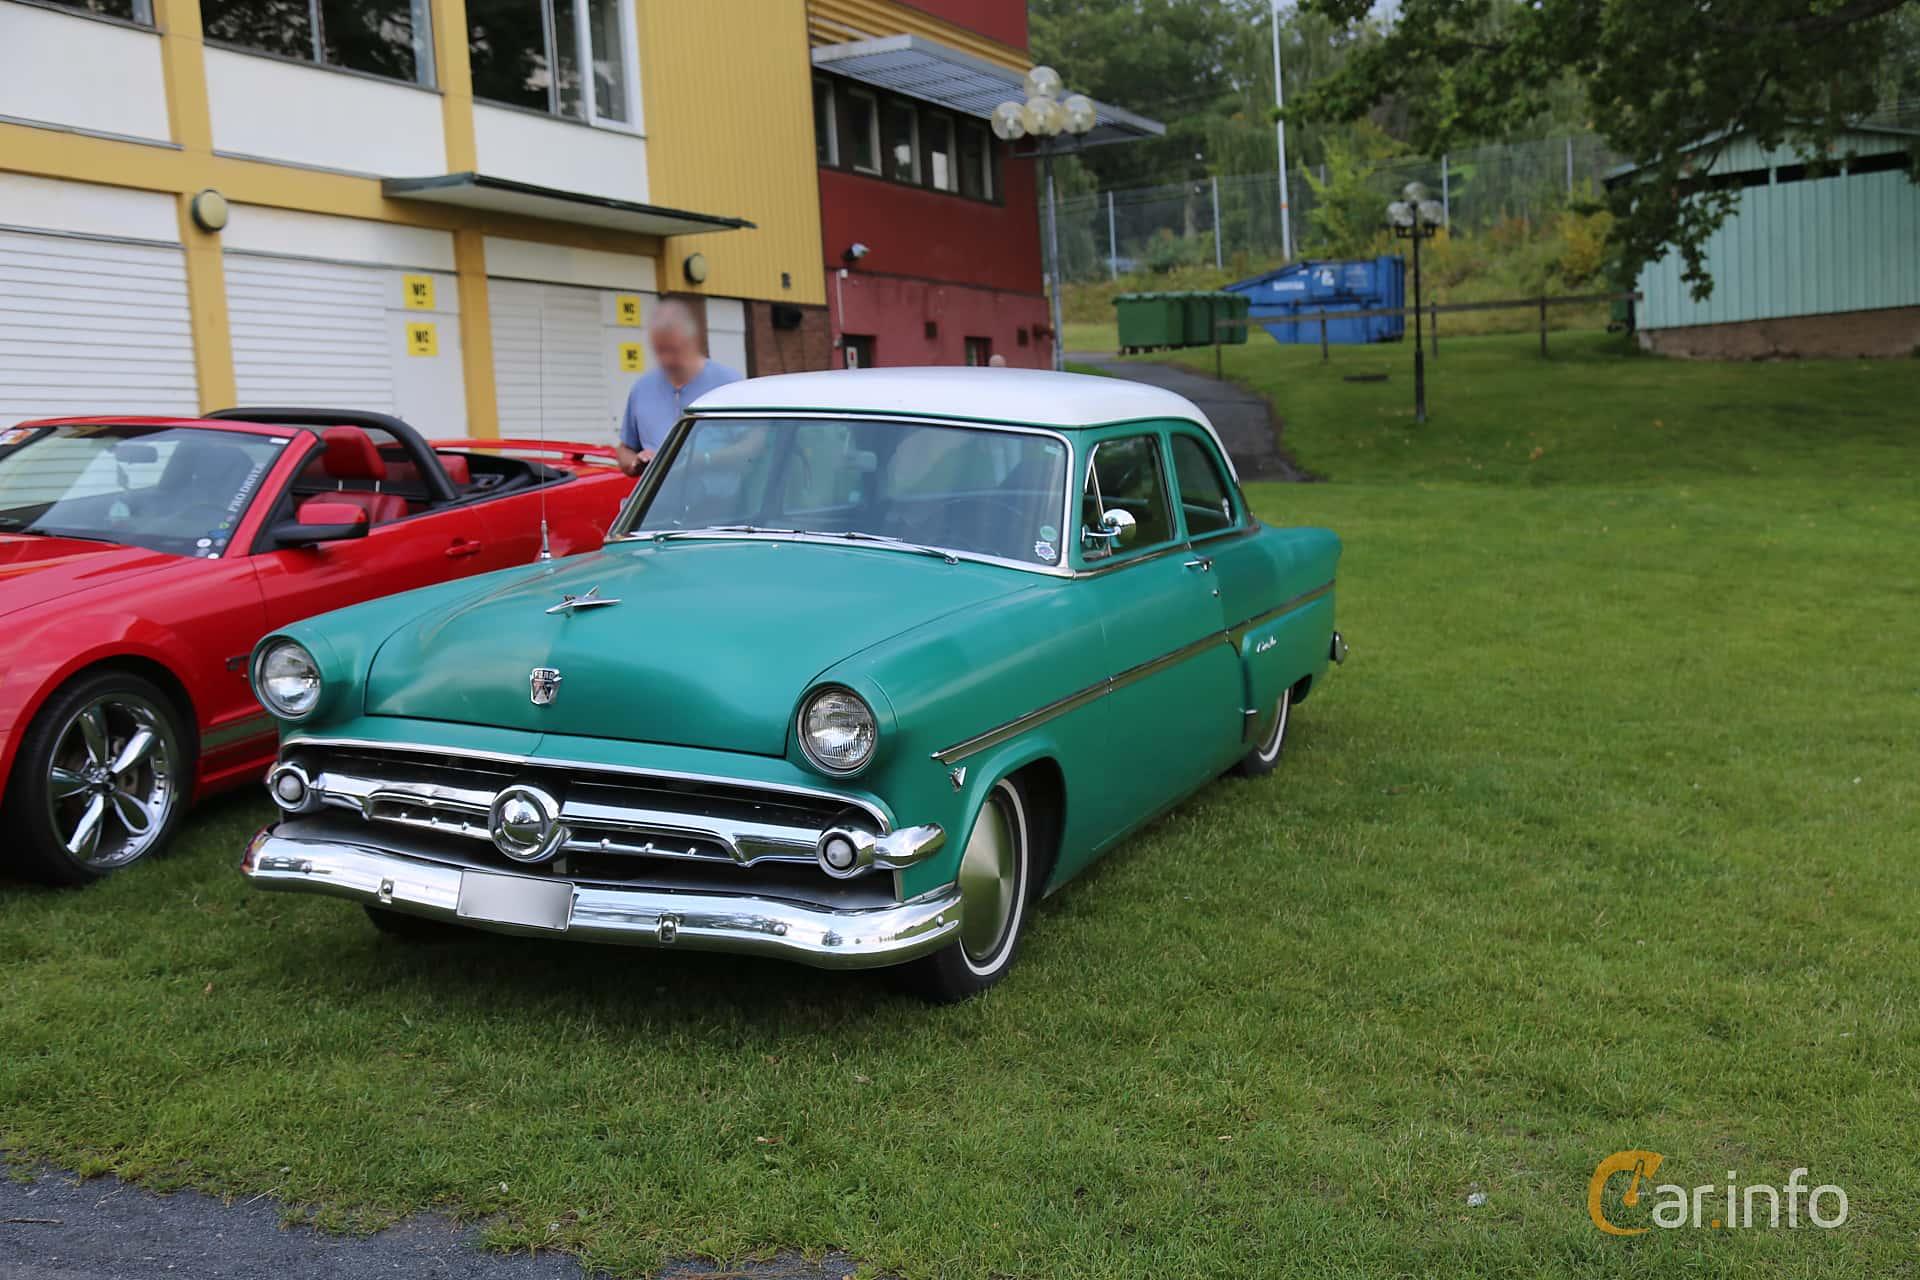 Ford Customline Coupé 3.9 V8 Automatic, 132hp, 1954 at Bil & MC-träffar i Huskvarna Folkets Park 2019 Amerikanska fordon